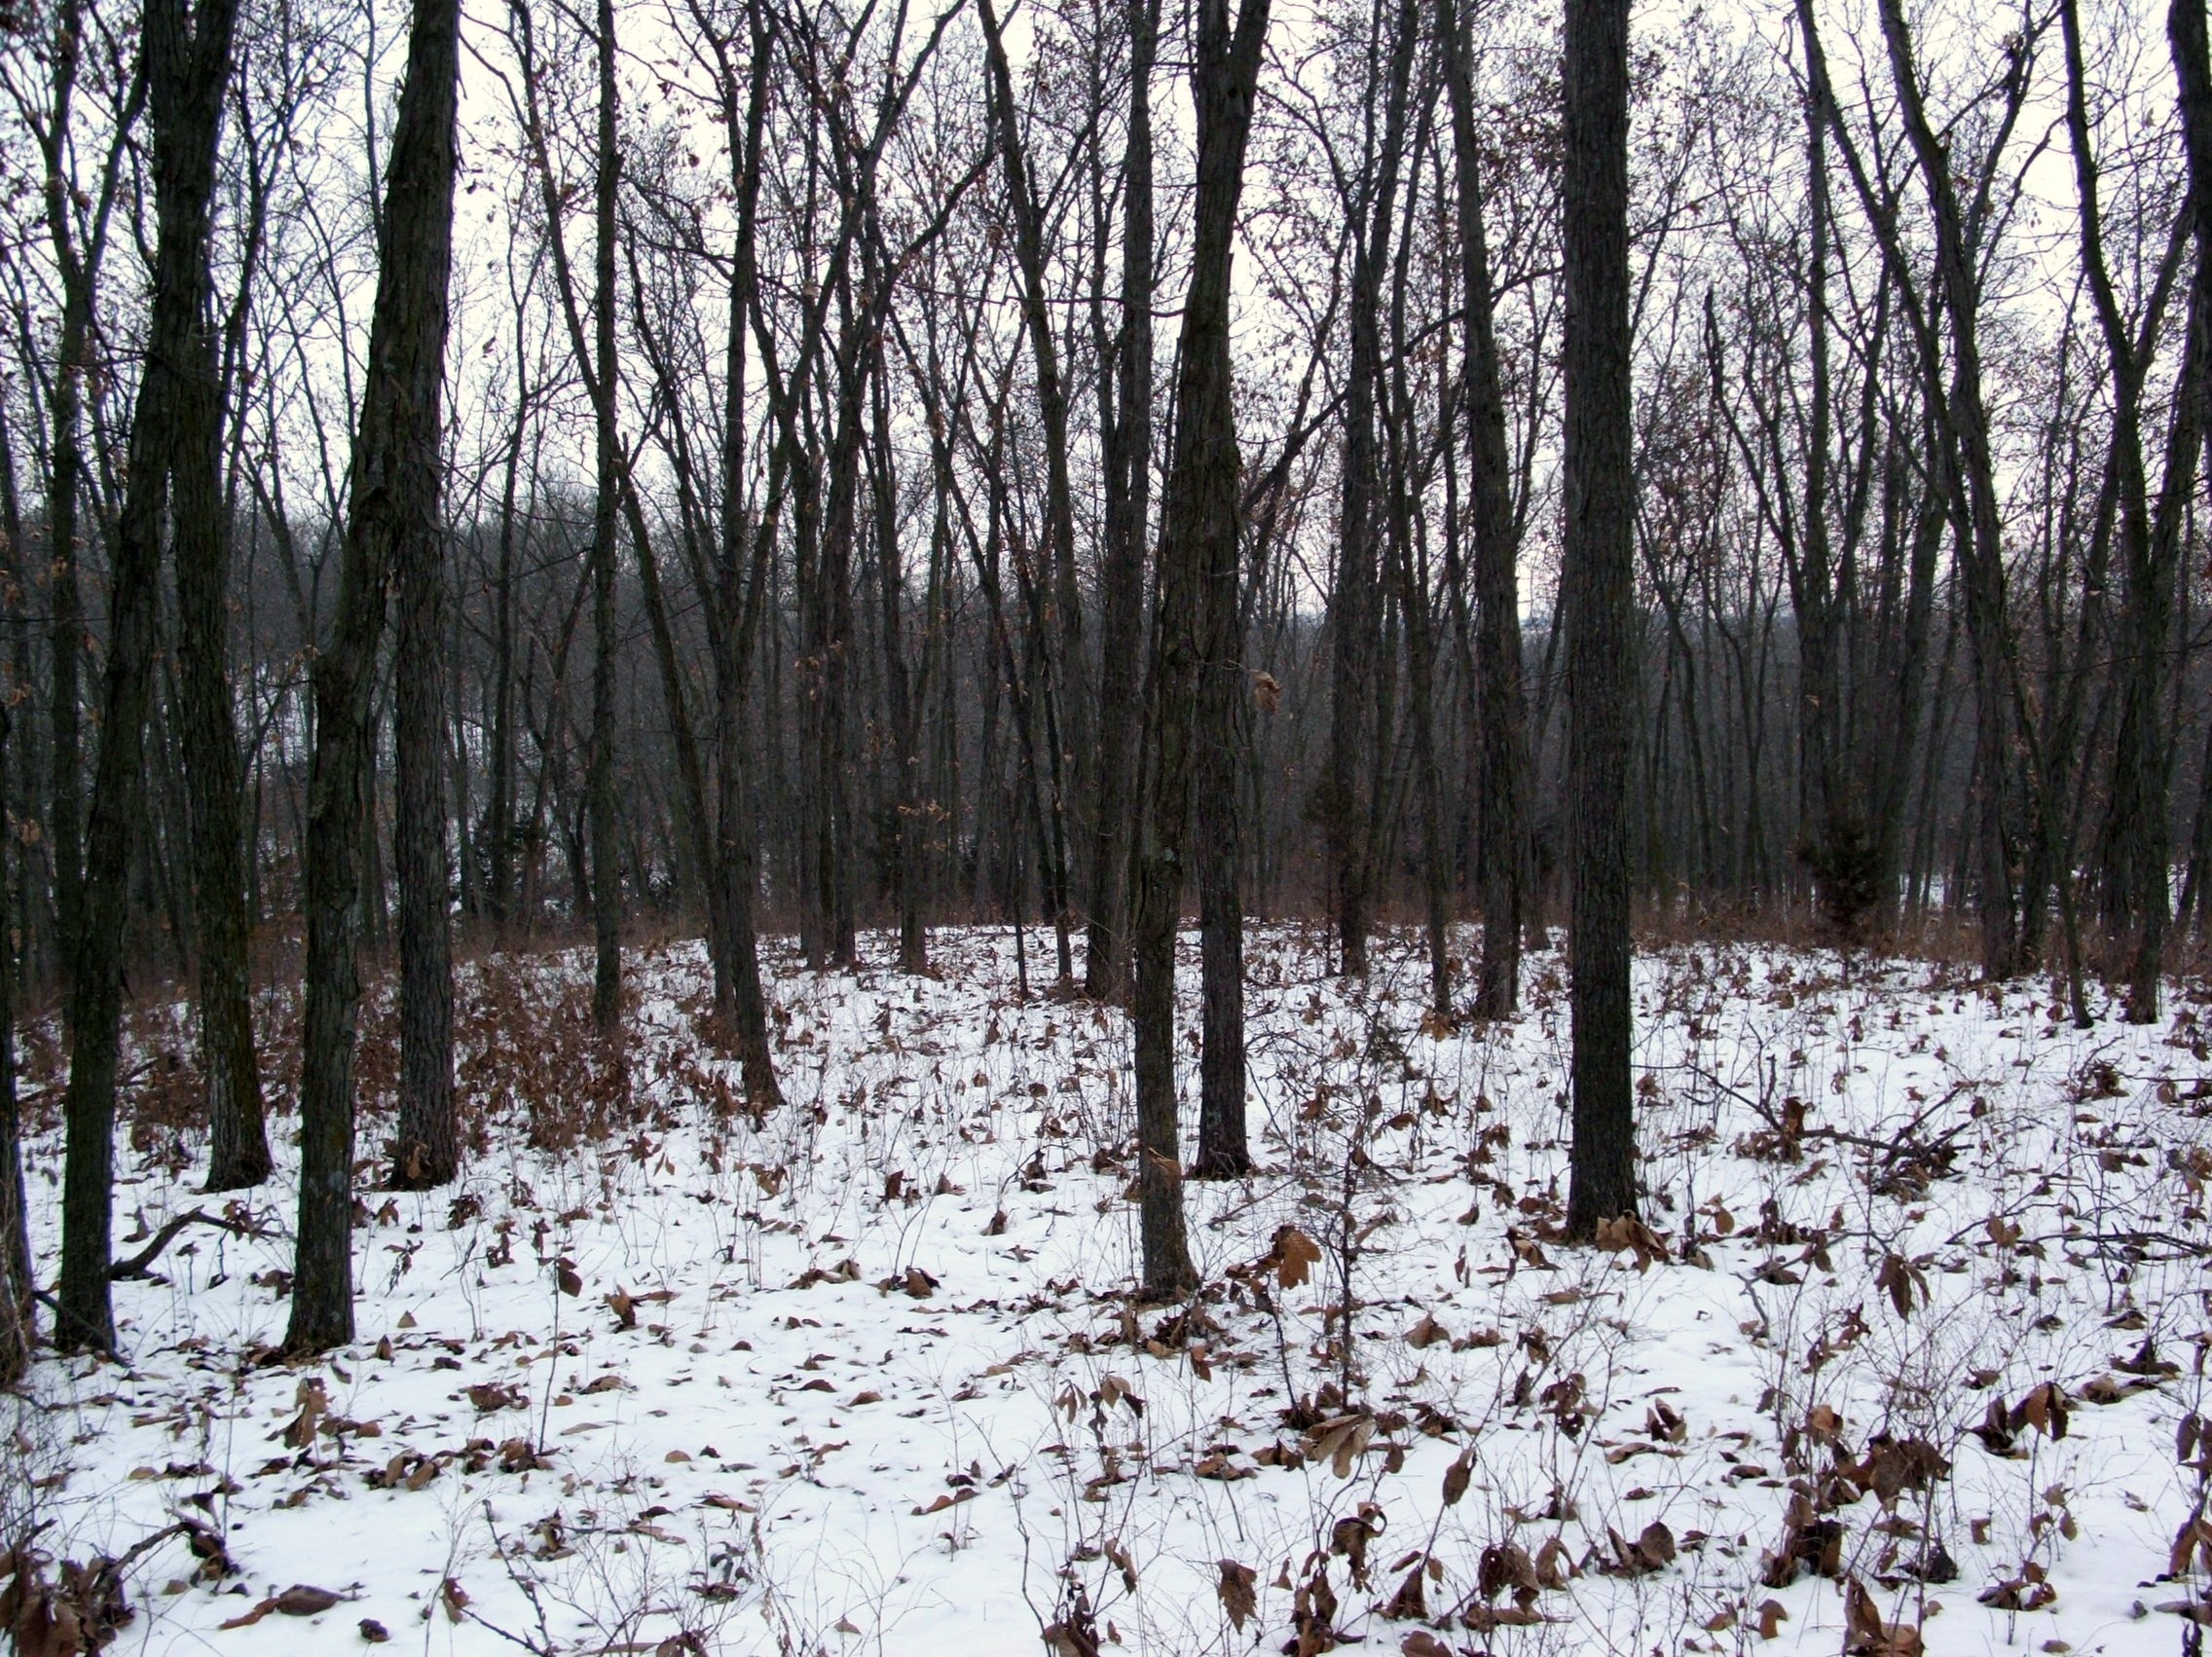 Open hardwoods offer very little in the way of cover or food.  Deer will avoid these areas in the late season.  Look for south facing slopes with thick cover.